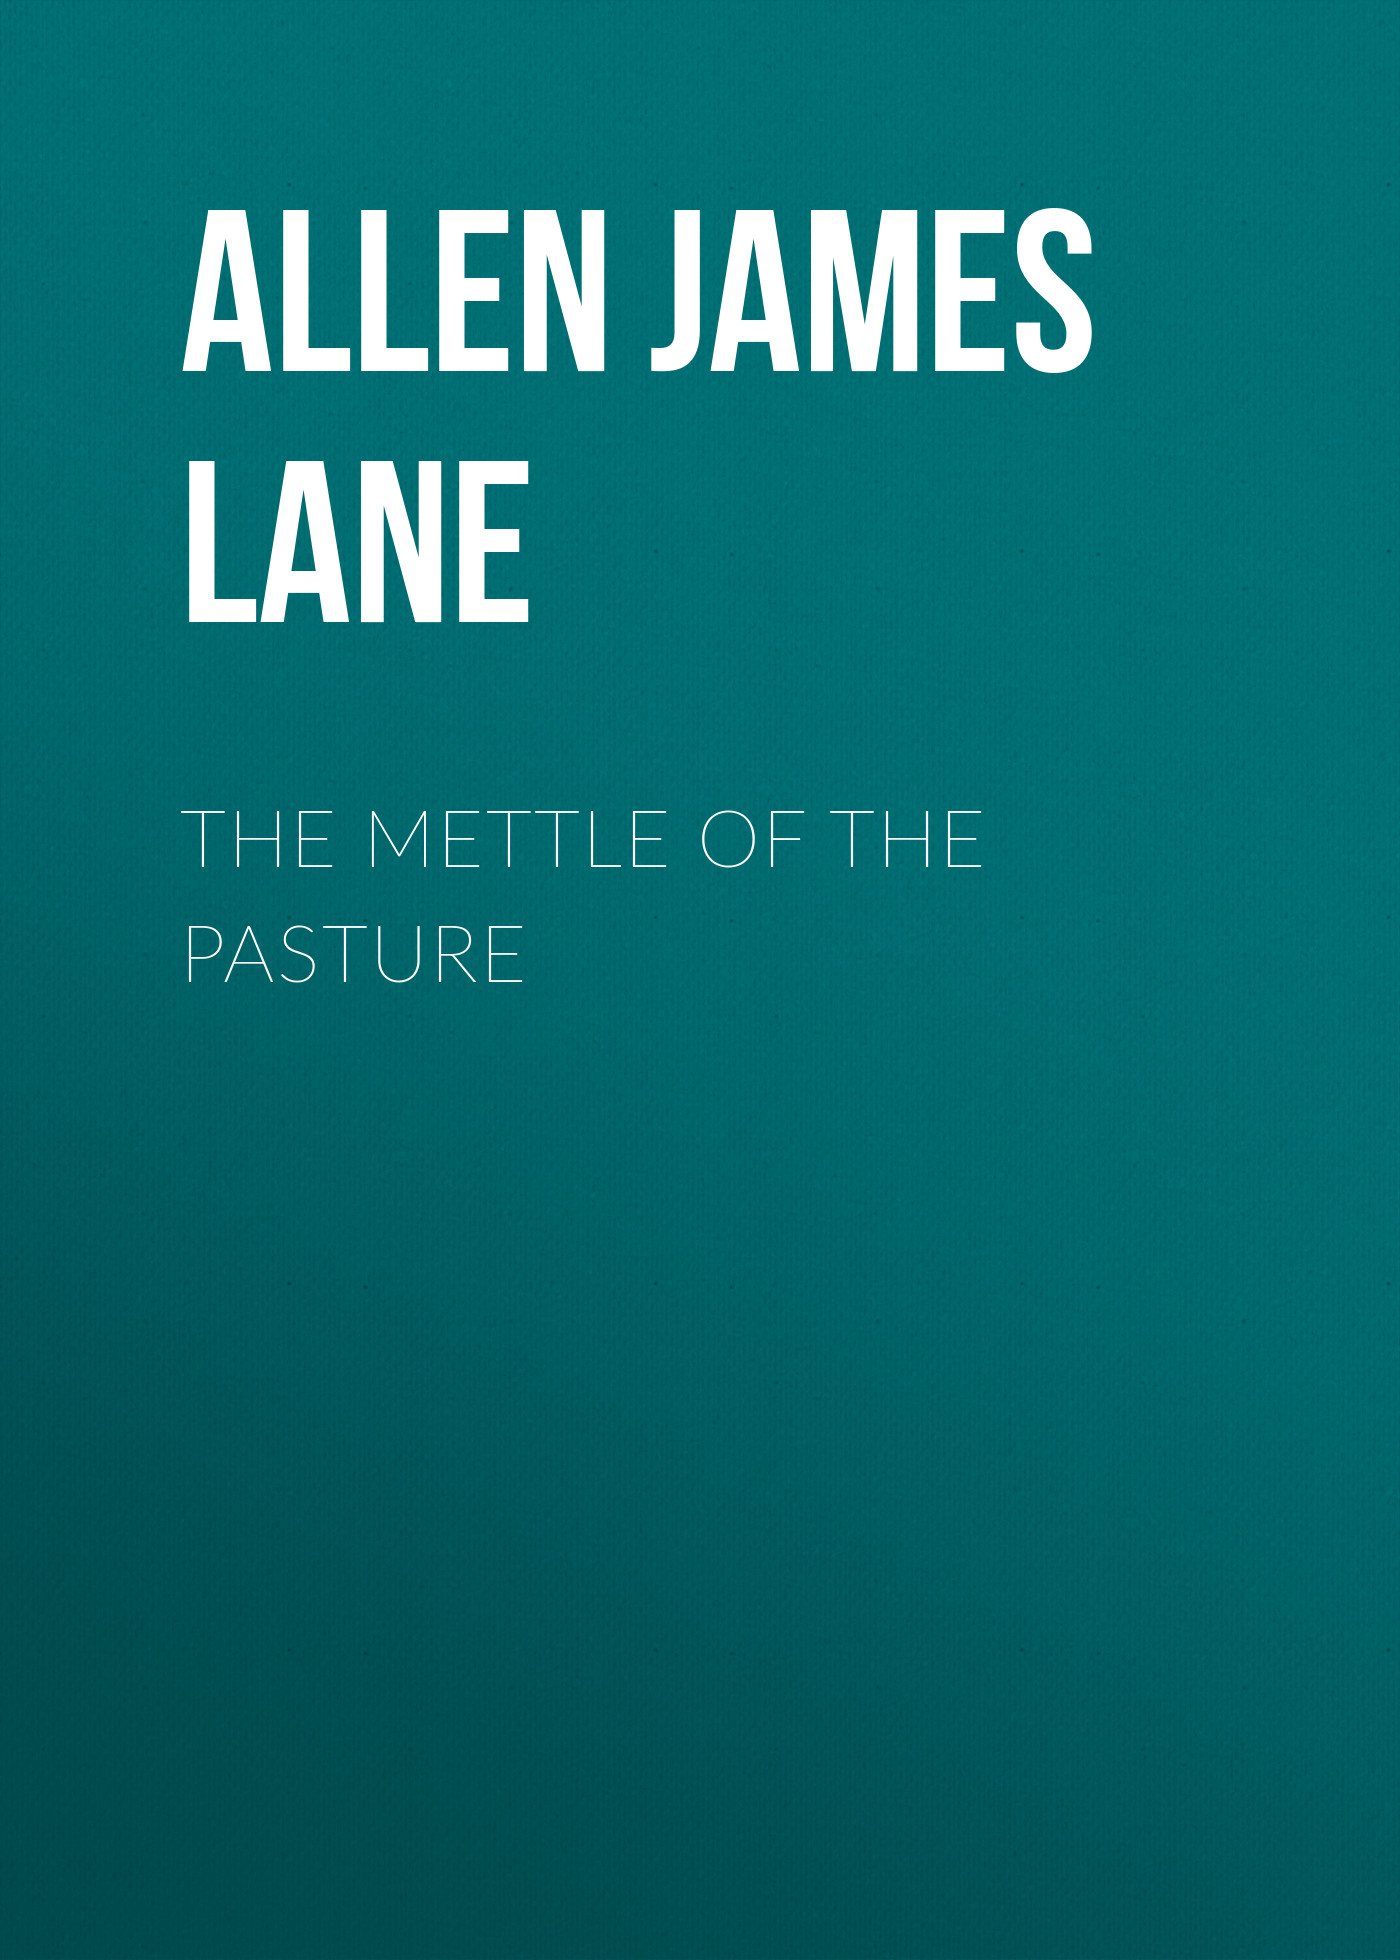 Allen James Lane The Mettle of the Pasture henry james the europeans